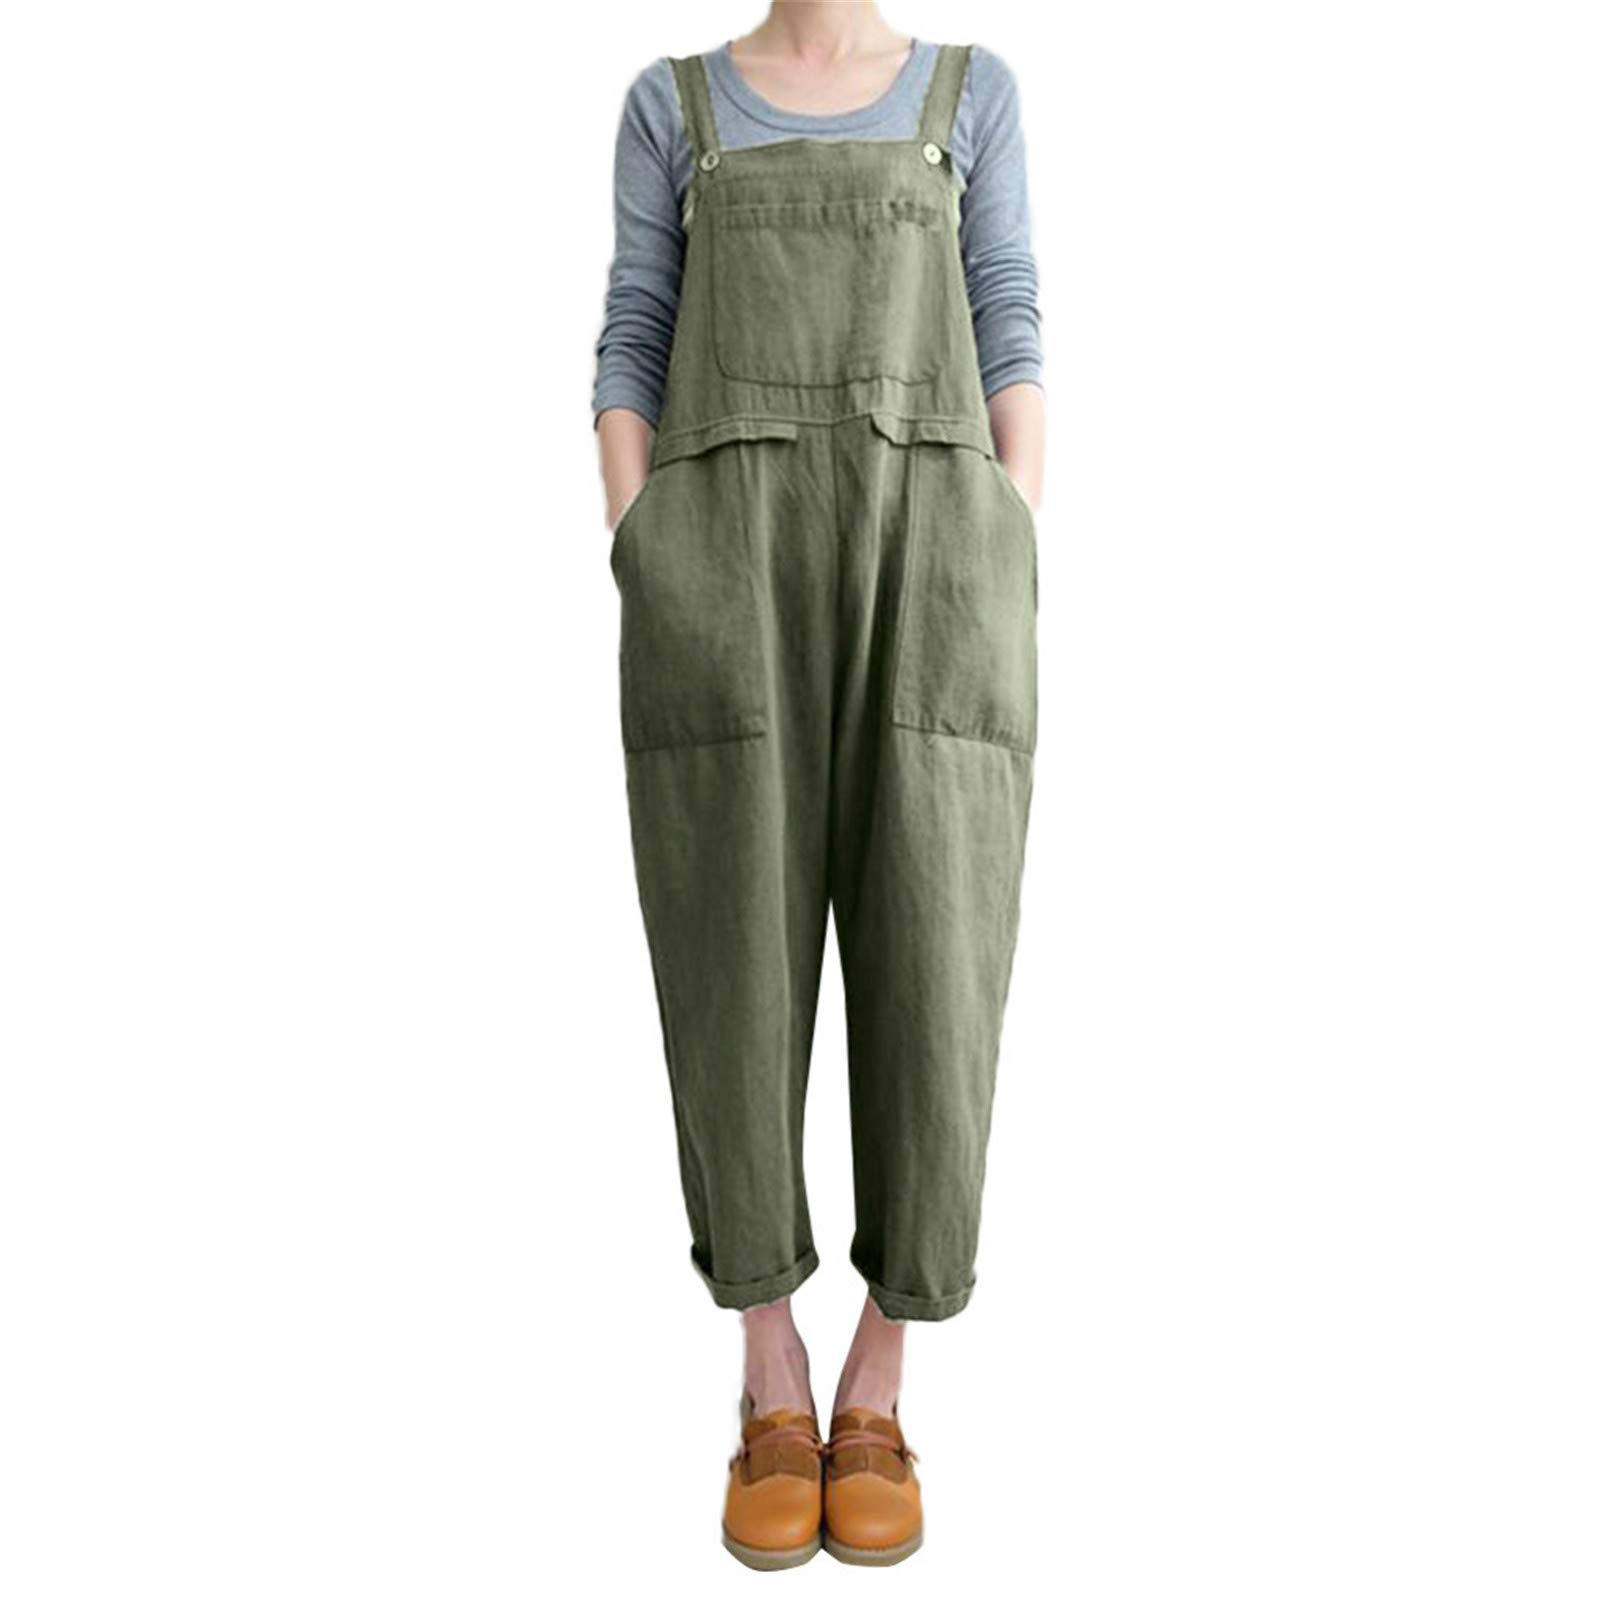 Thenxin Womens Baggy Bib Overalls Harem Pants with Pockets Plus Size Rompers Jumpsuit Dungarees(Army Green,XXXXXL)